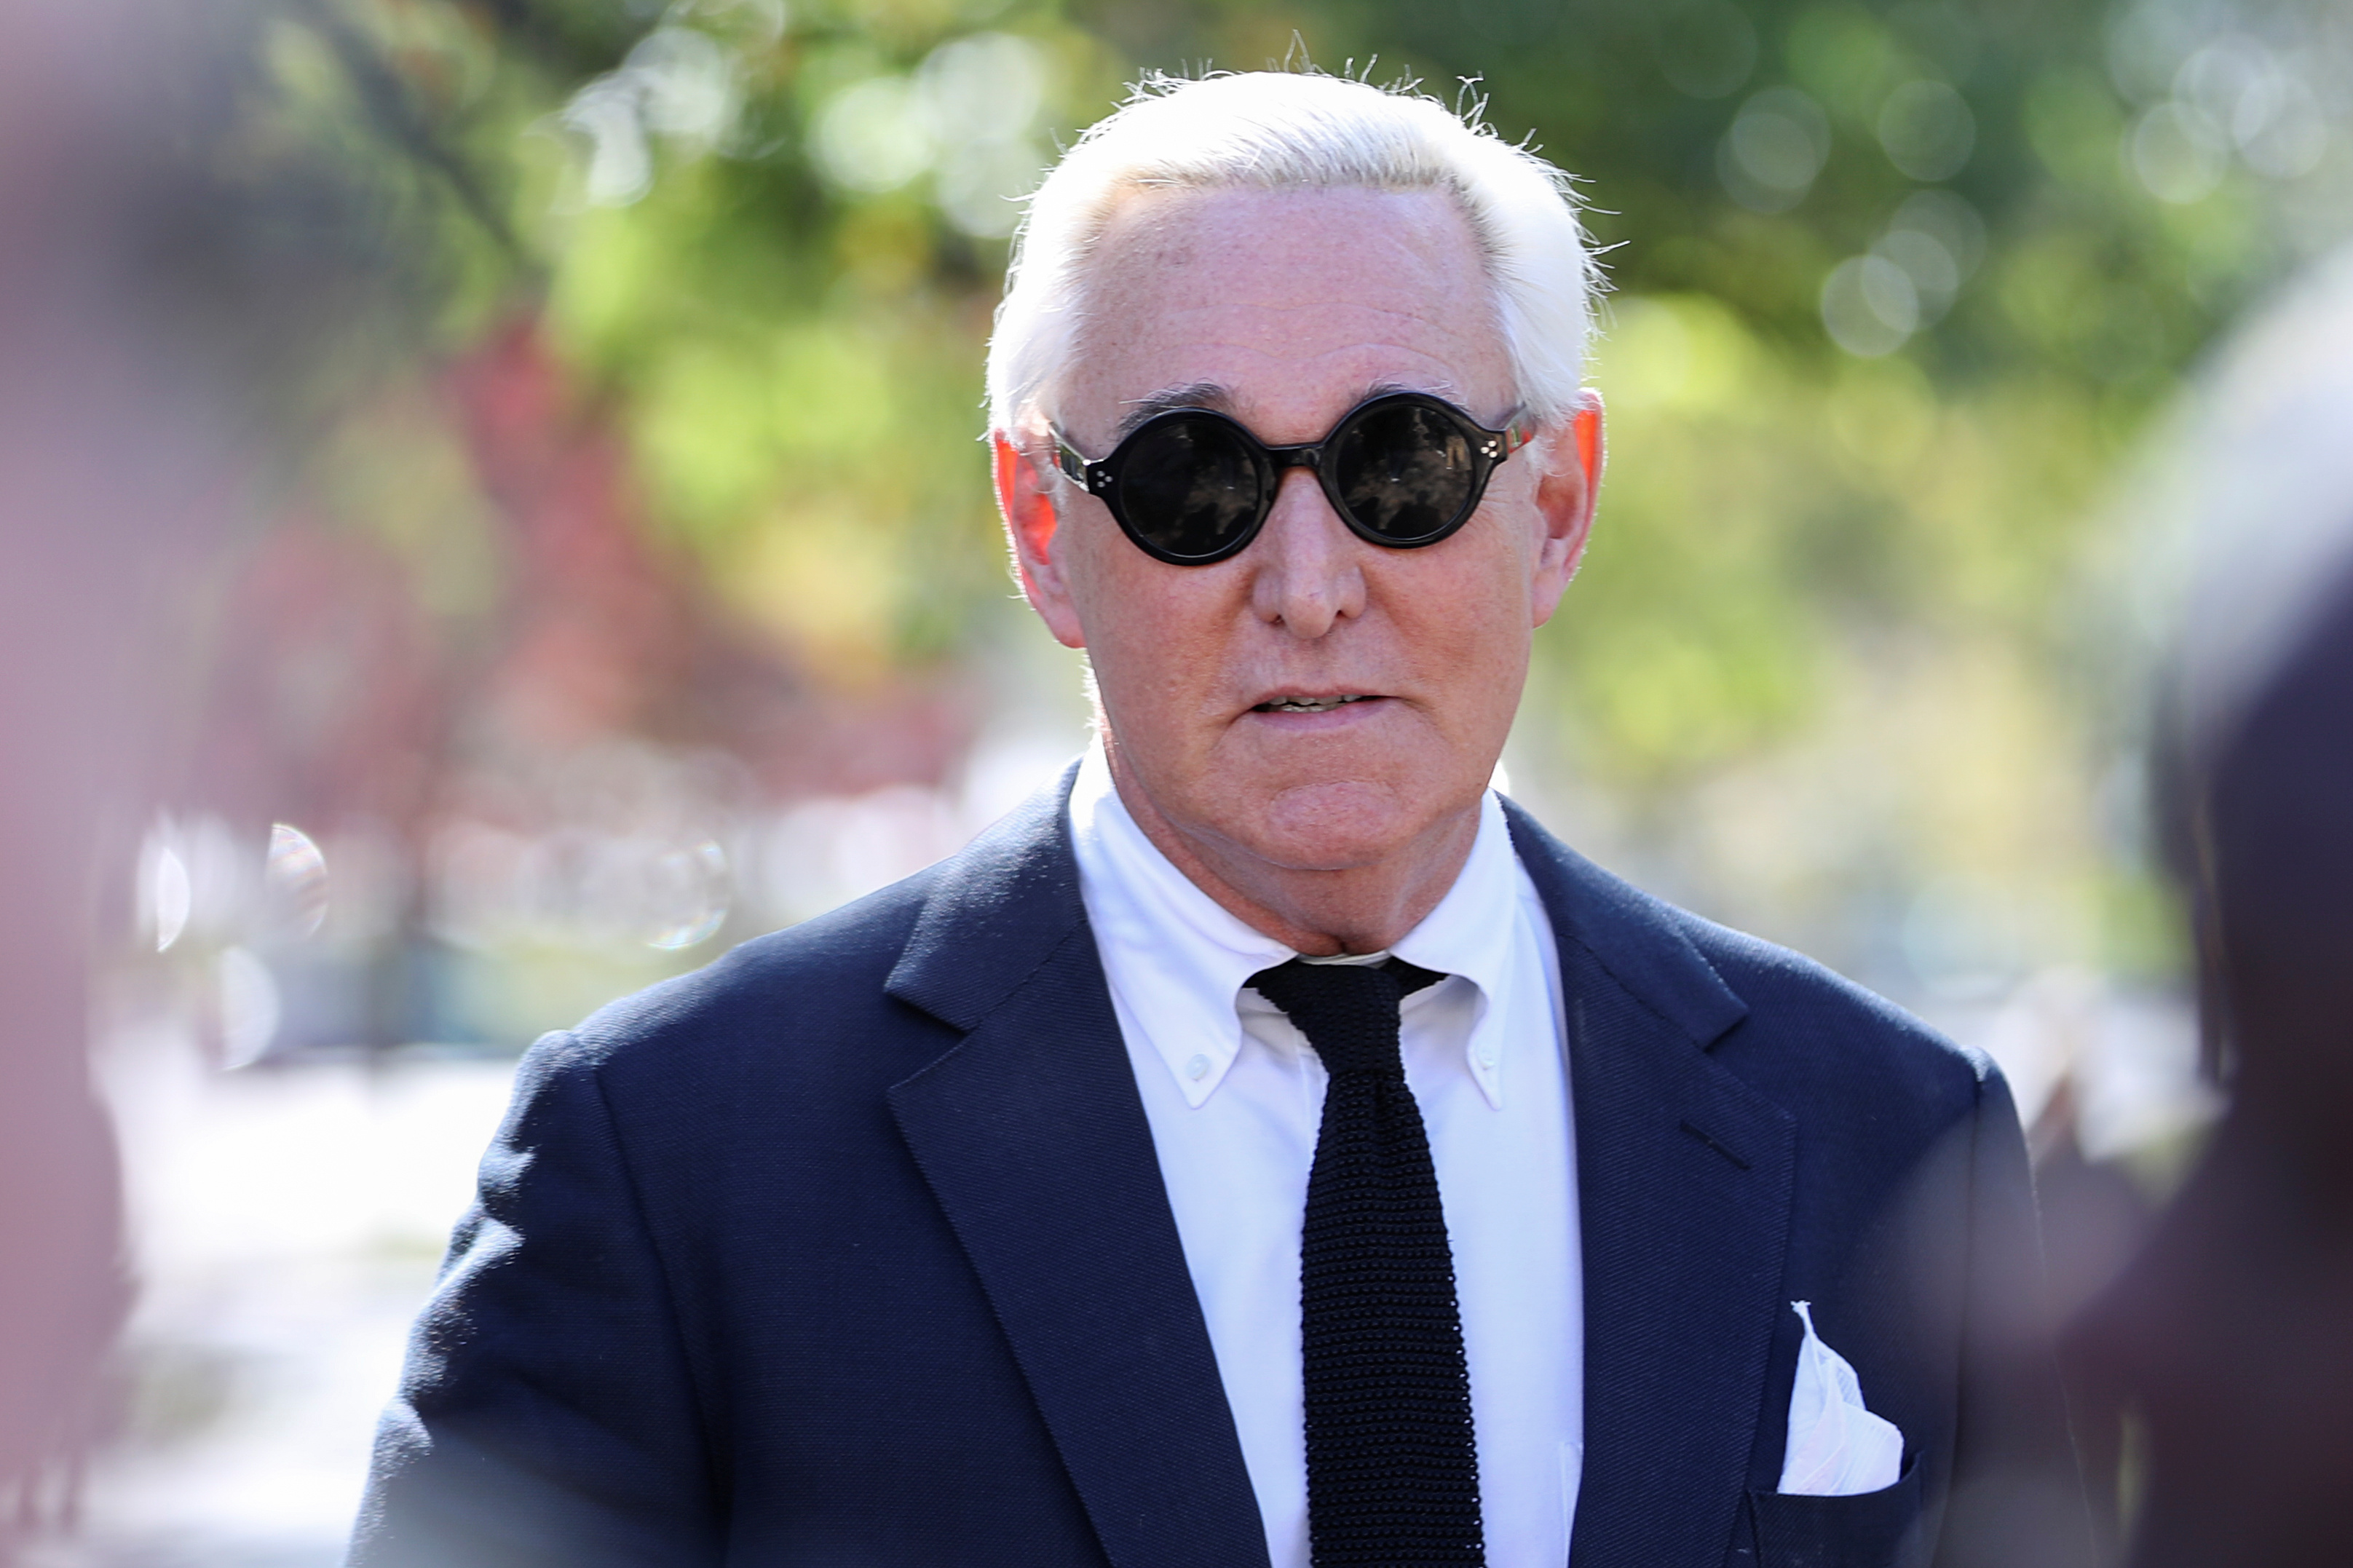 Roger Stone, former campaign adviser to U.S. President Donald Trump, departs following a pre-trial hearing at U.S. District Court in Washington, U.S., November 4, 2019. REUTERS/Siphiwe Sibeko